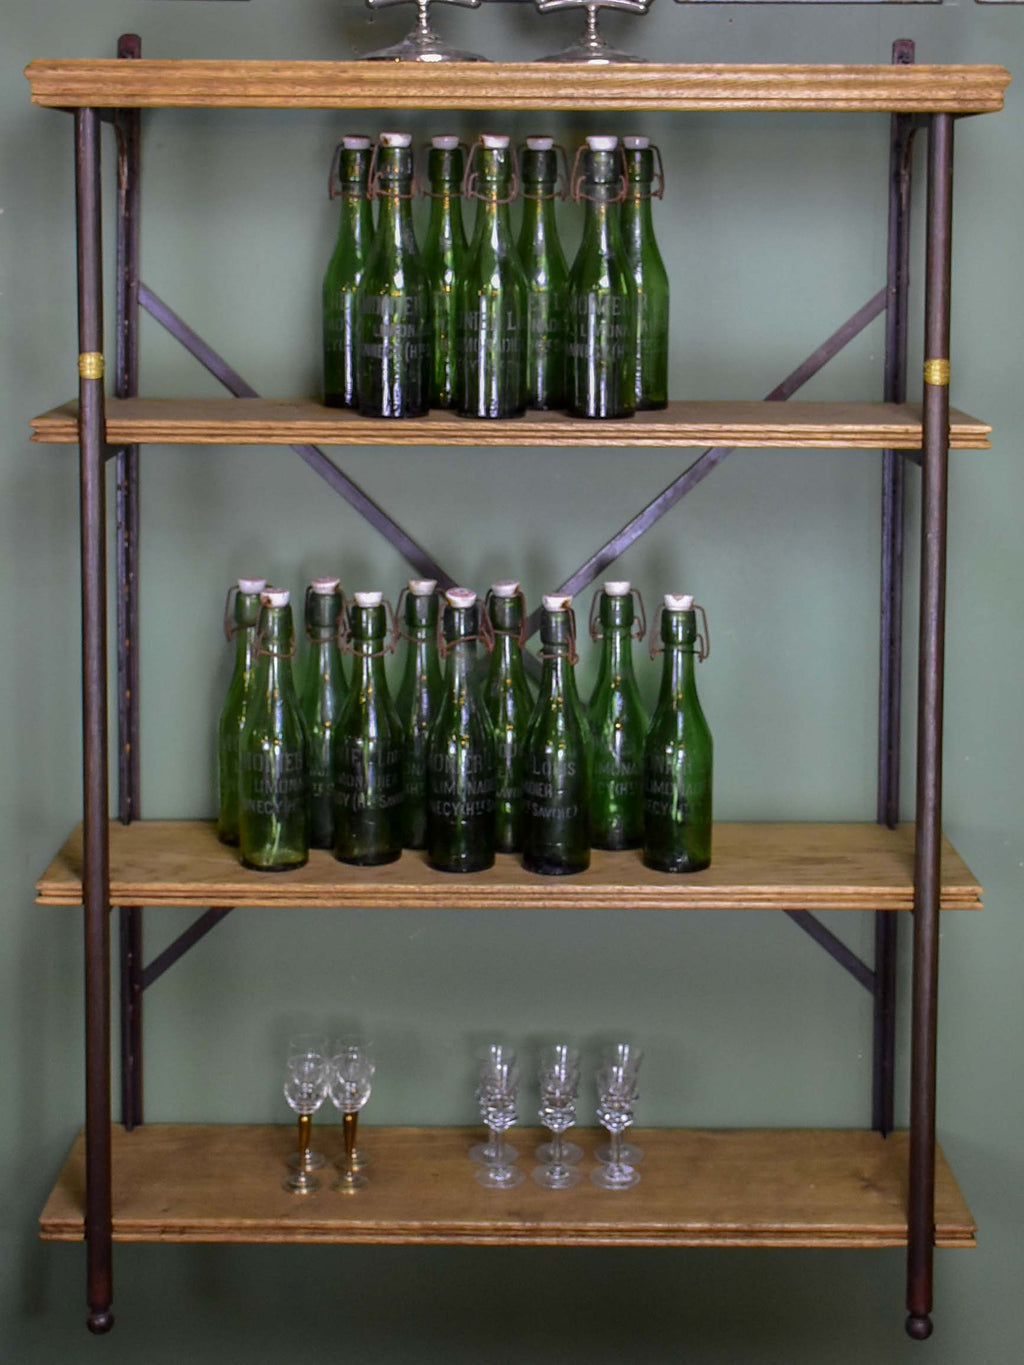 Antique French industrial shelving unit - Theodor Scherf, Paris